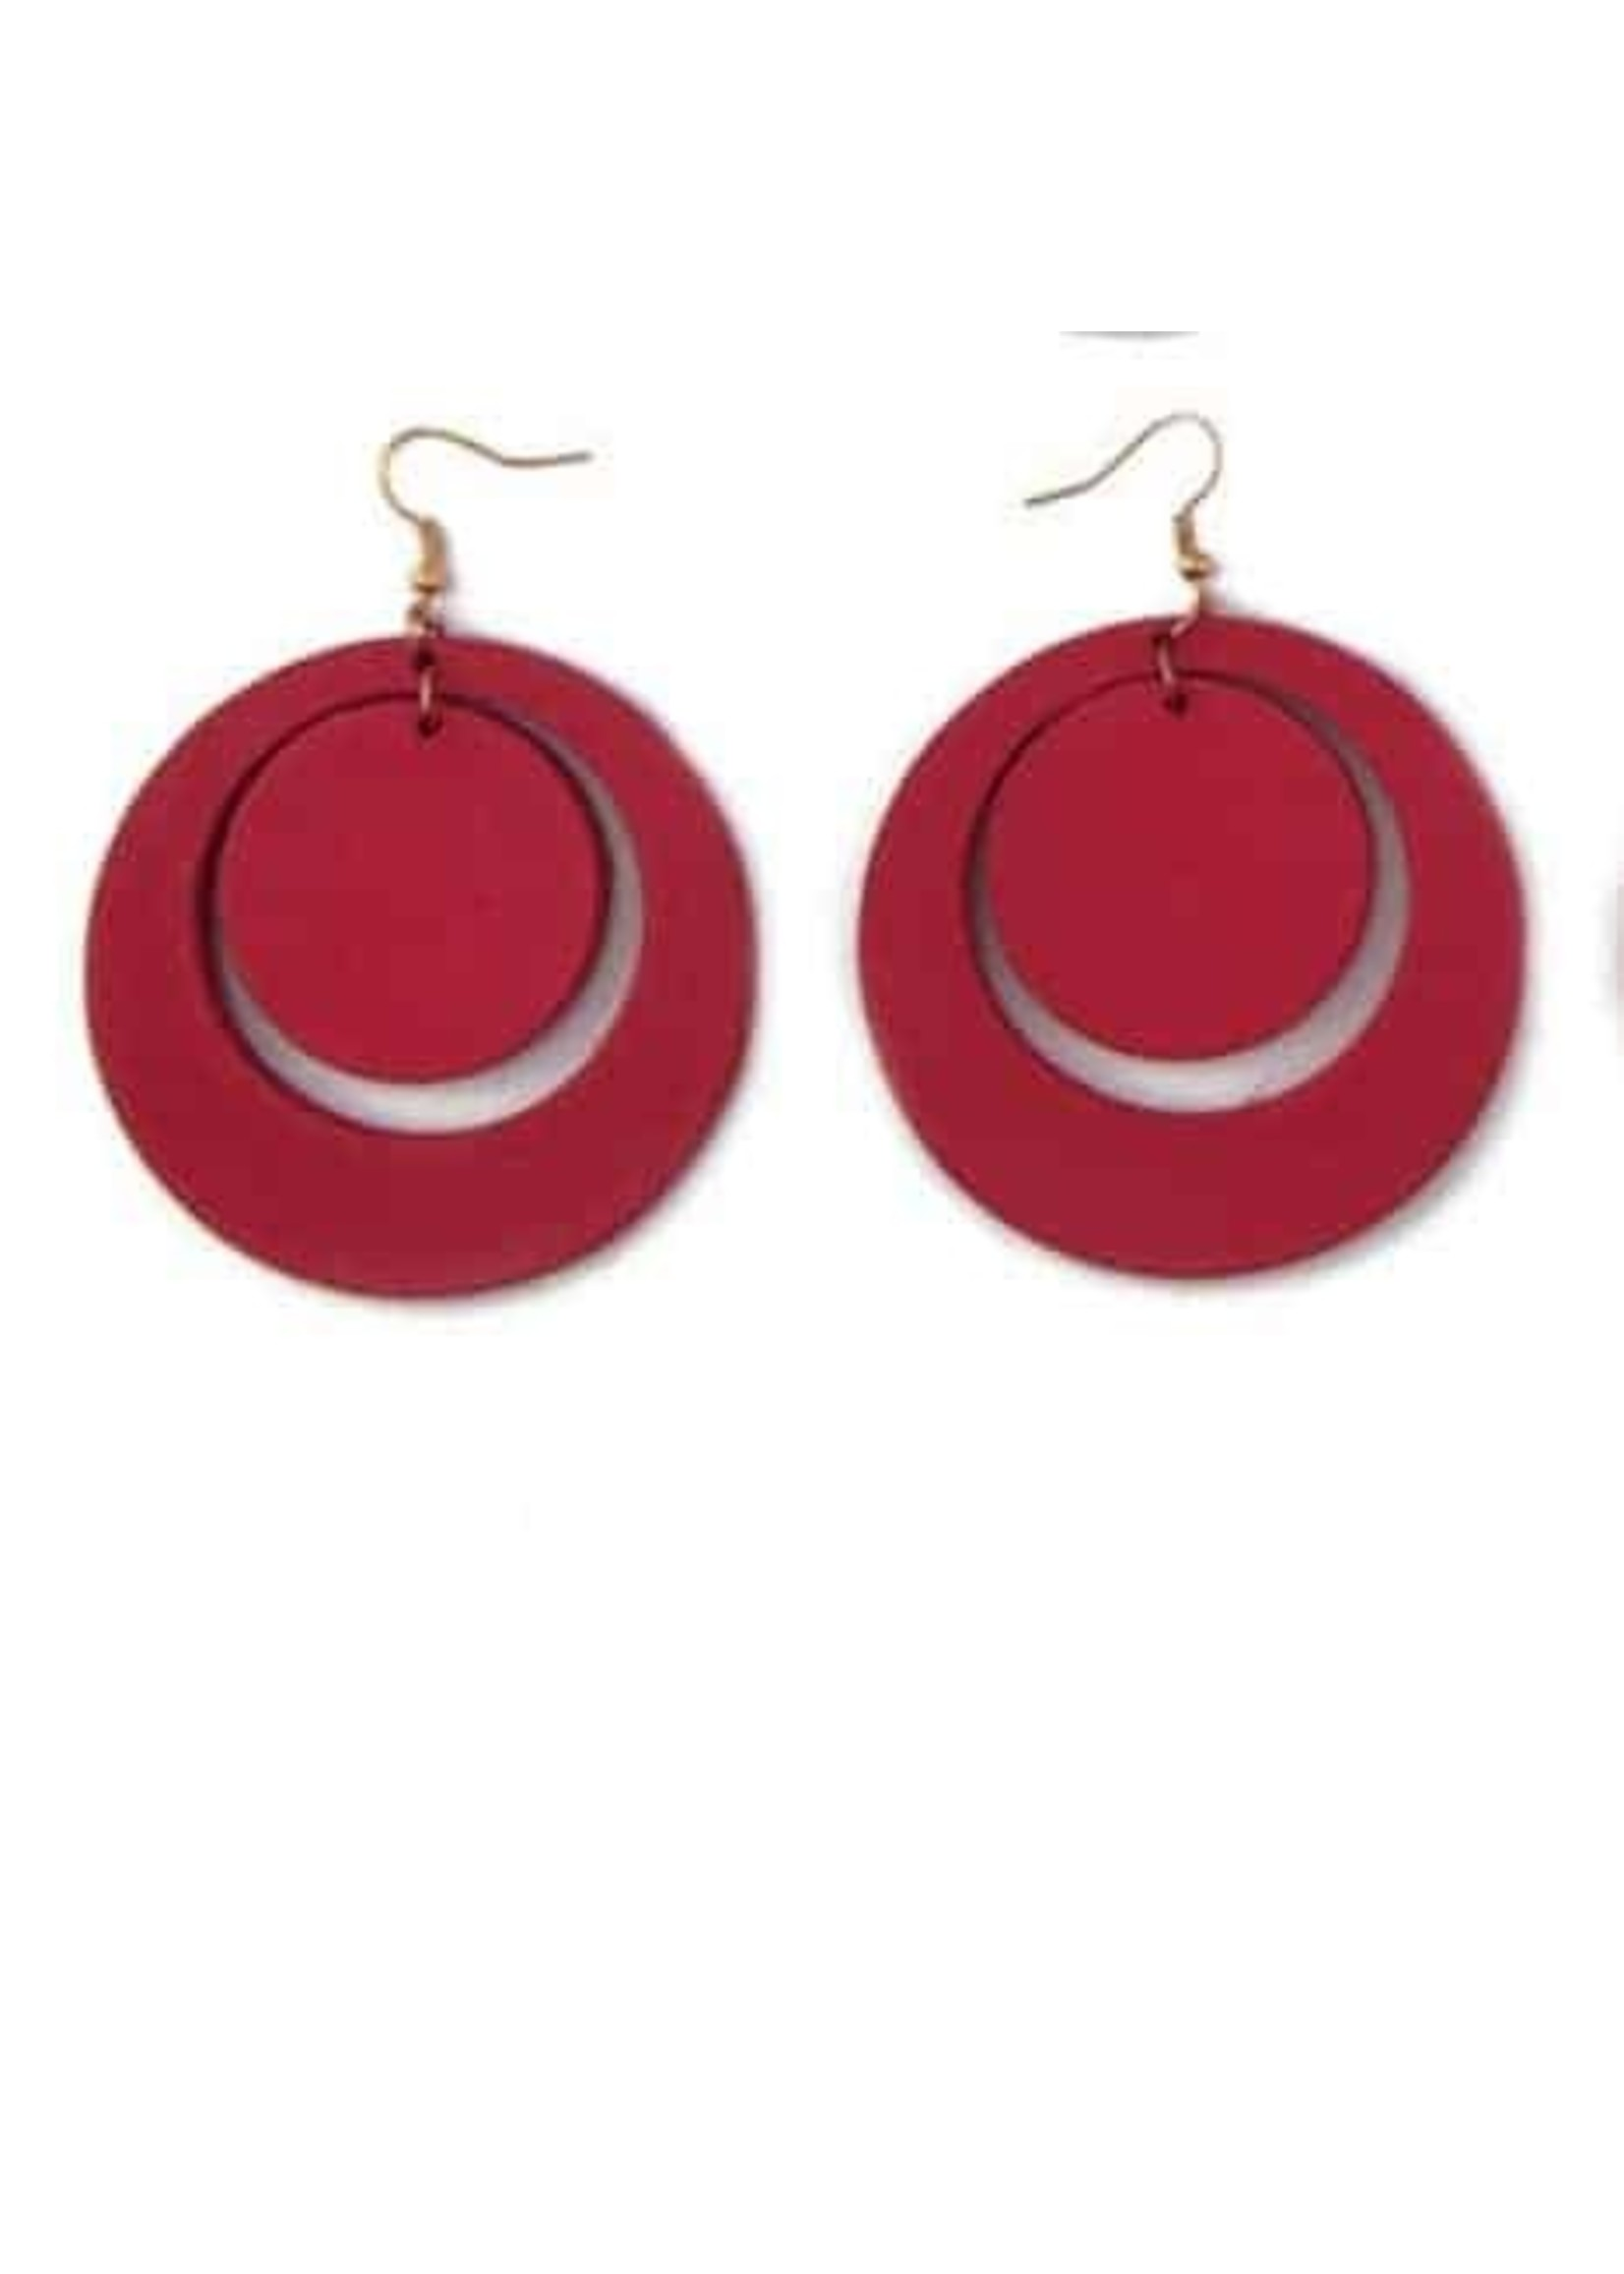 Earrings 2 Circles-Gold Plated (RED)